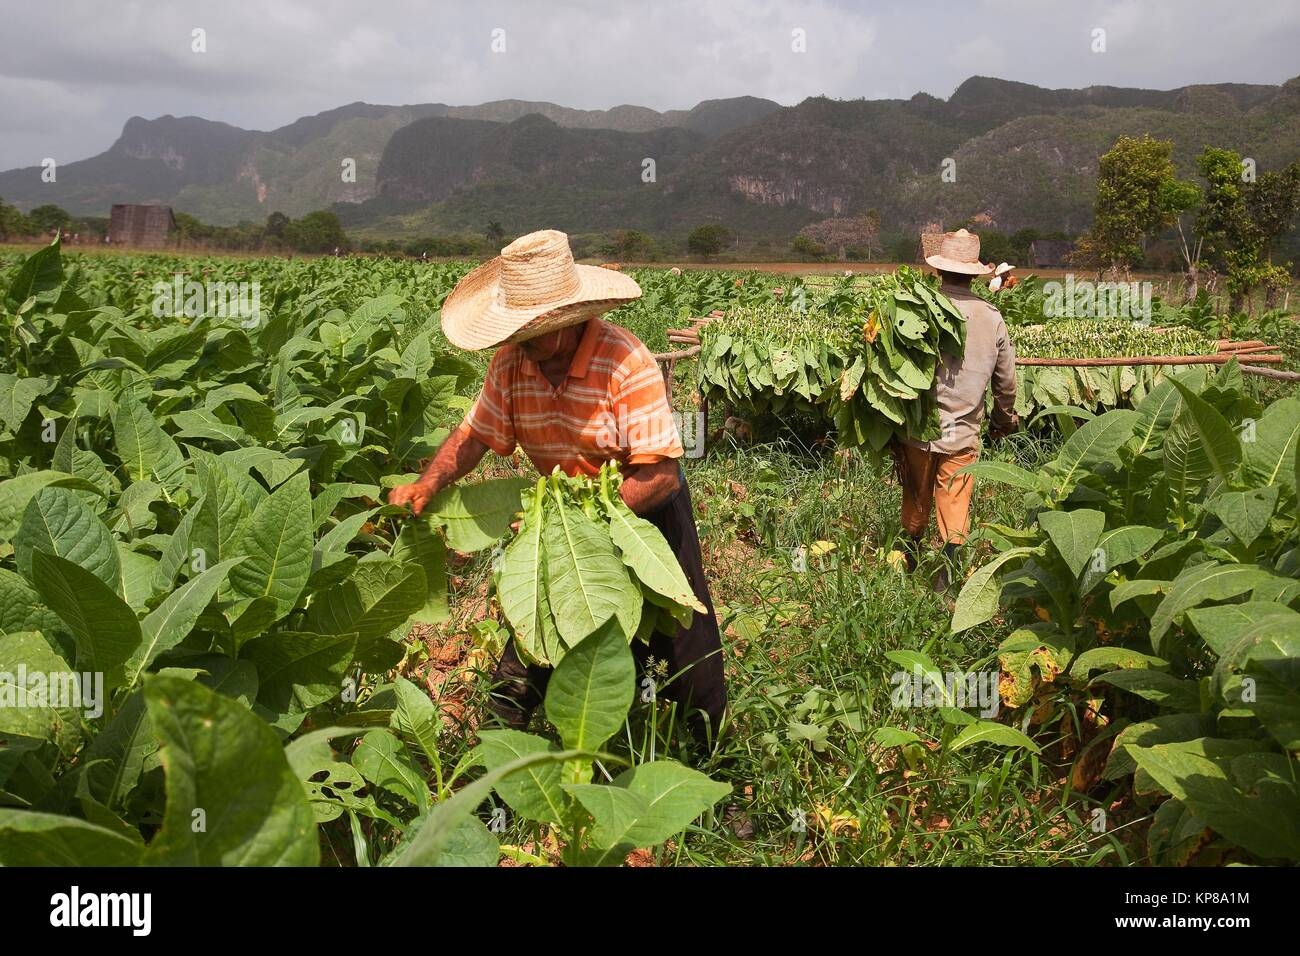 Farmers picking tobacco leaves in the valley, Vinales, Pinar del Rio Province, Cuba, Central America - Stock Image